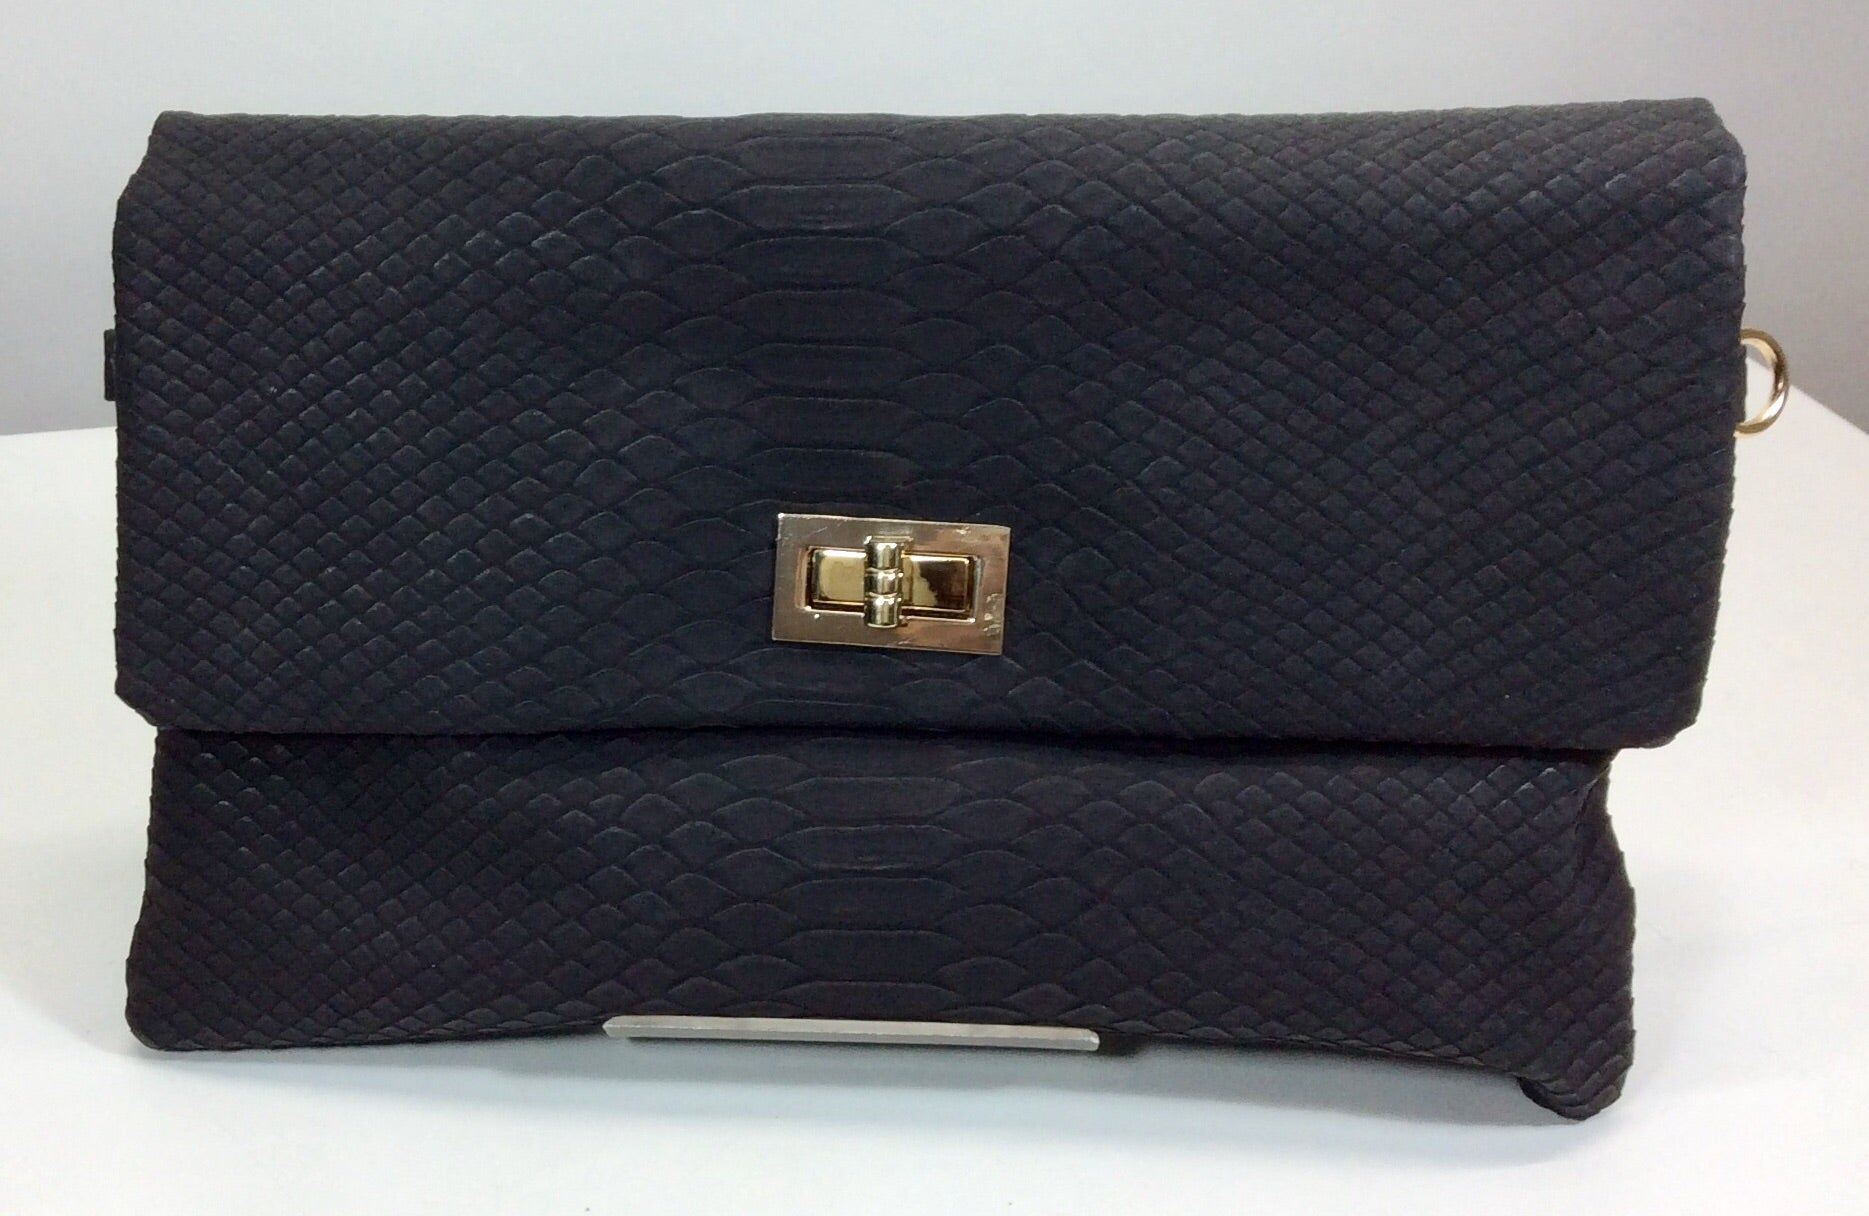 Black embossed snakeskin clutch with matching strap